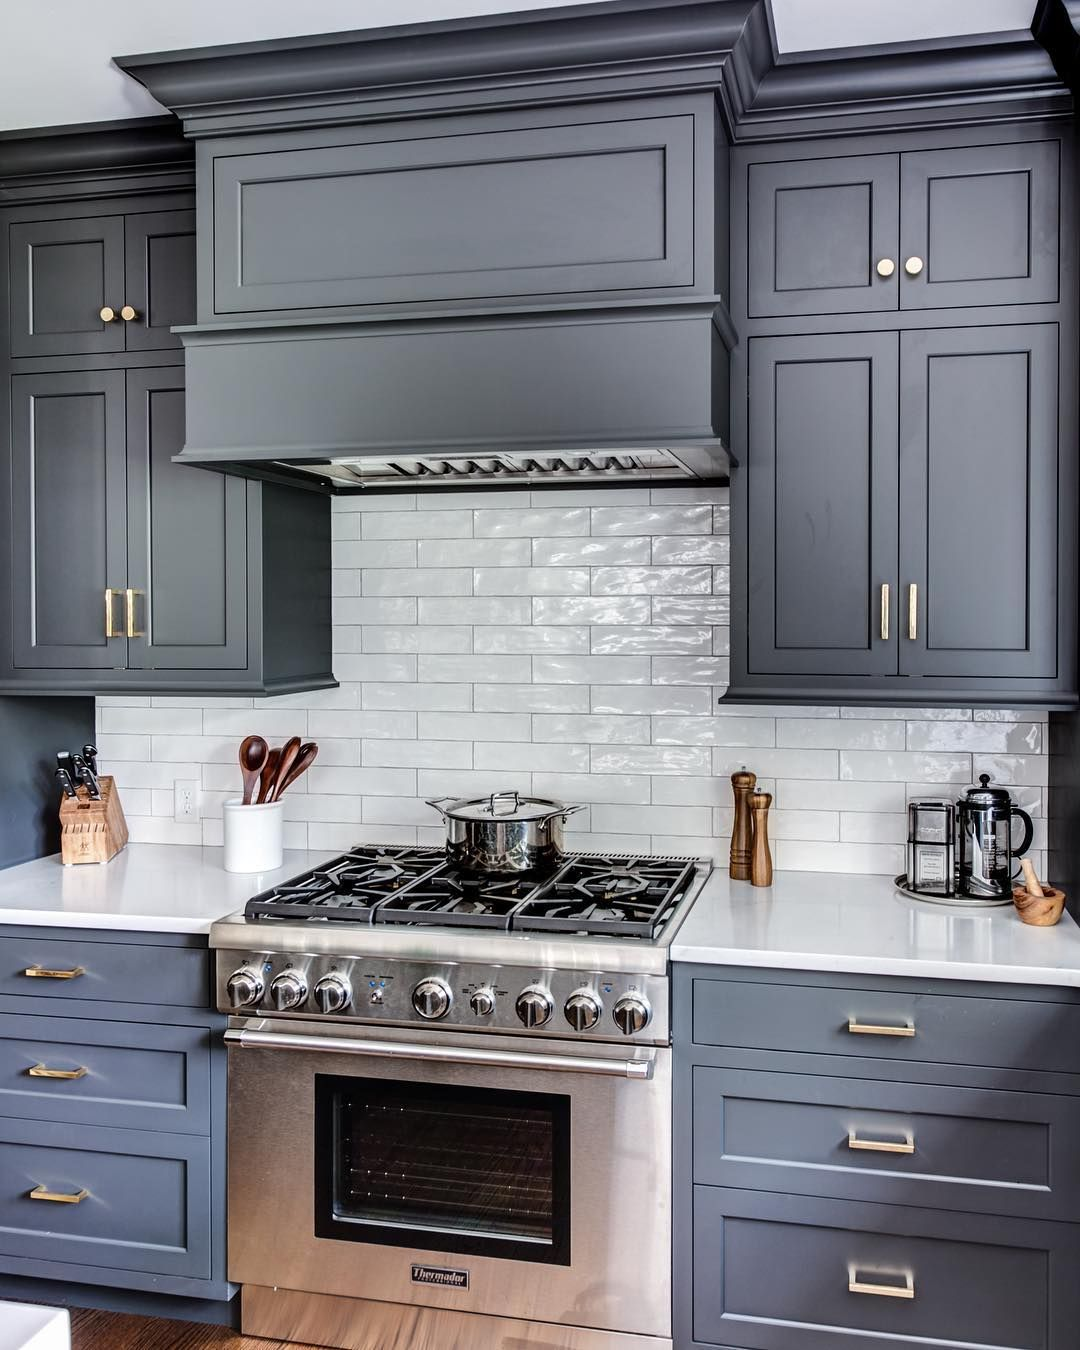 Benjamin Moore Kitchen Cabinet Colors Wrought Iron By Ben Moore Low Sheen New Favorite Kitchen